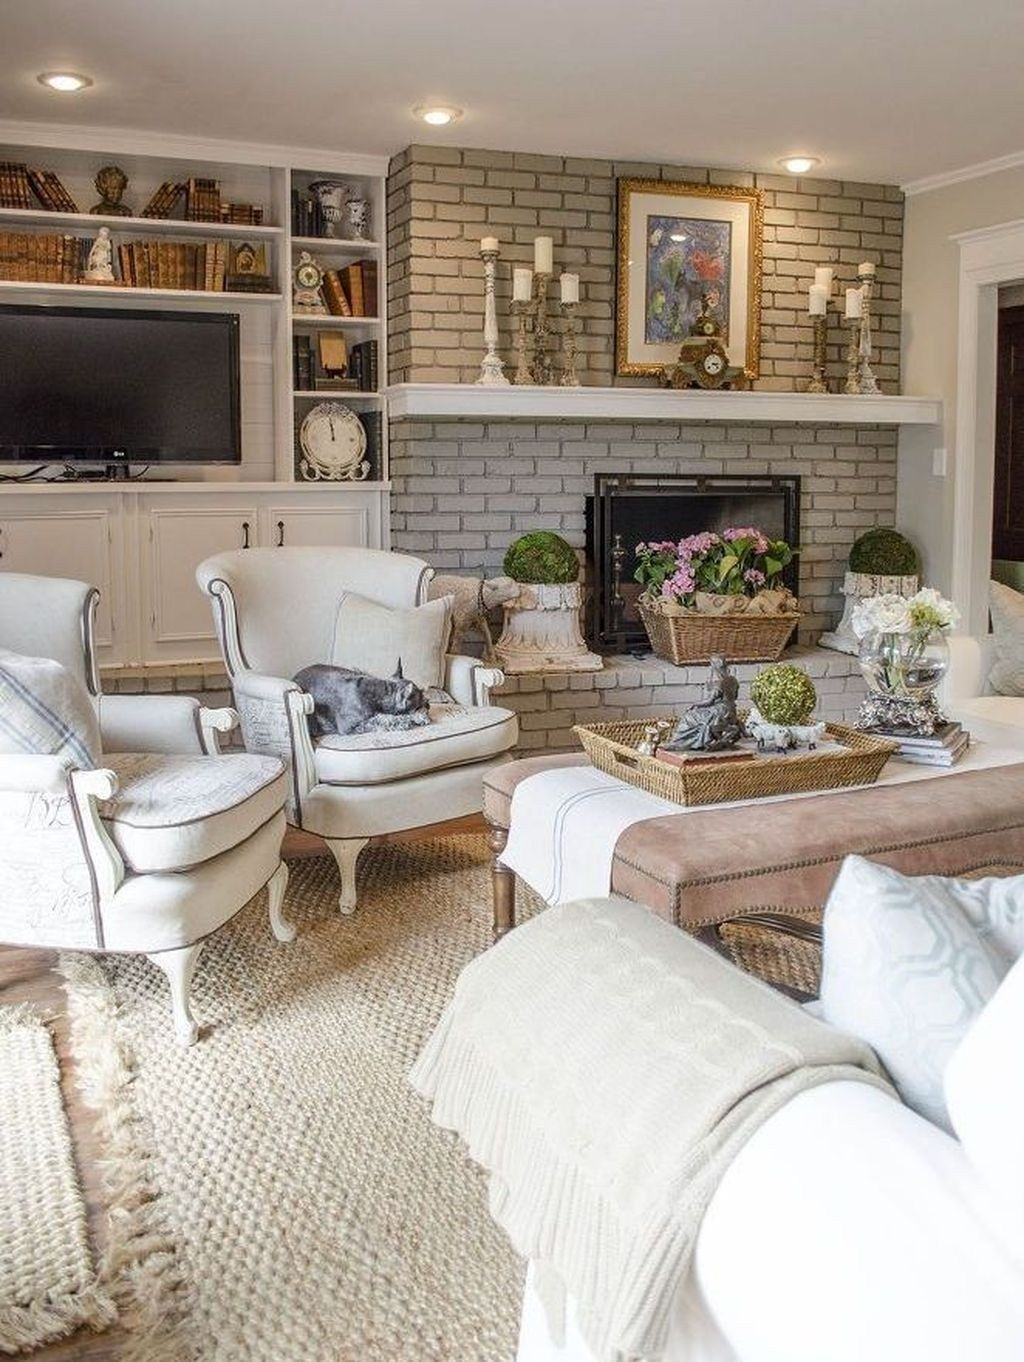 Cozy French Country Living Room Decor Ideas 04 | French ...